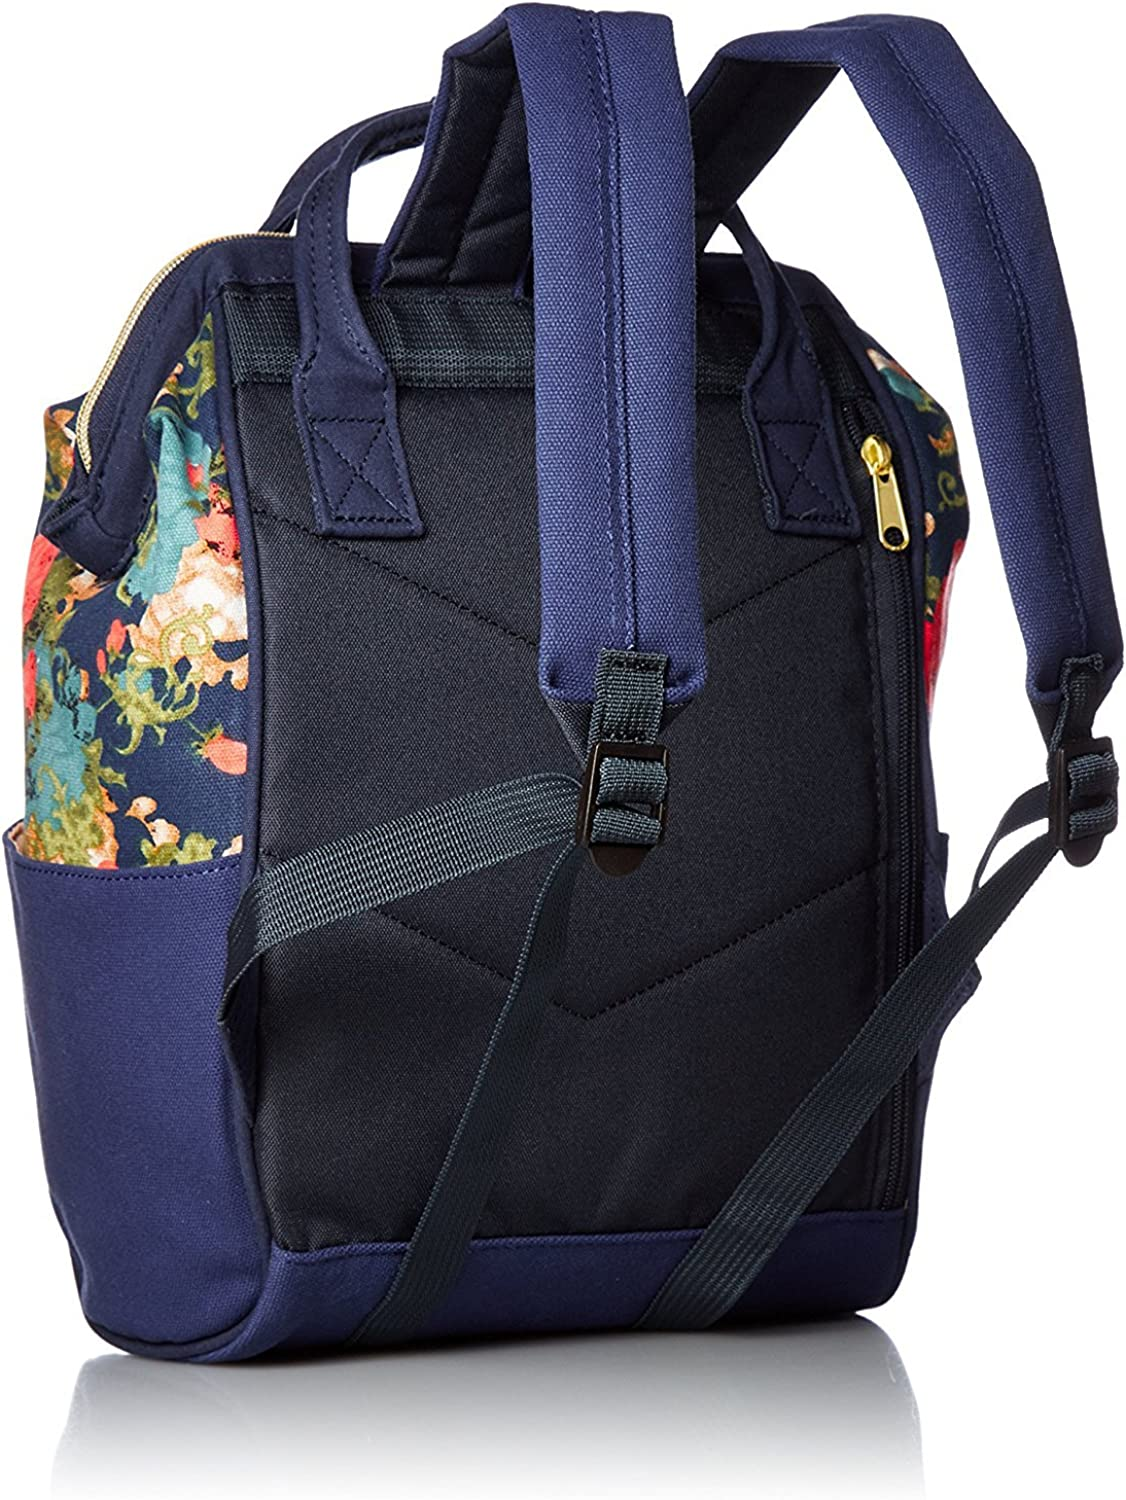 N Flower Smal Size Anello Polyester Canvas Backpacks Japan import